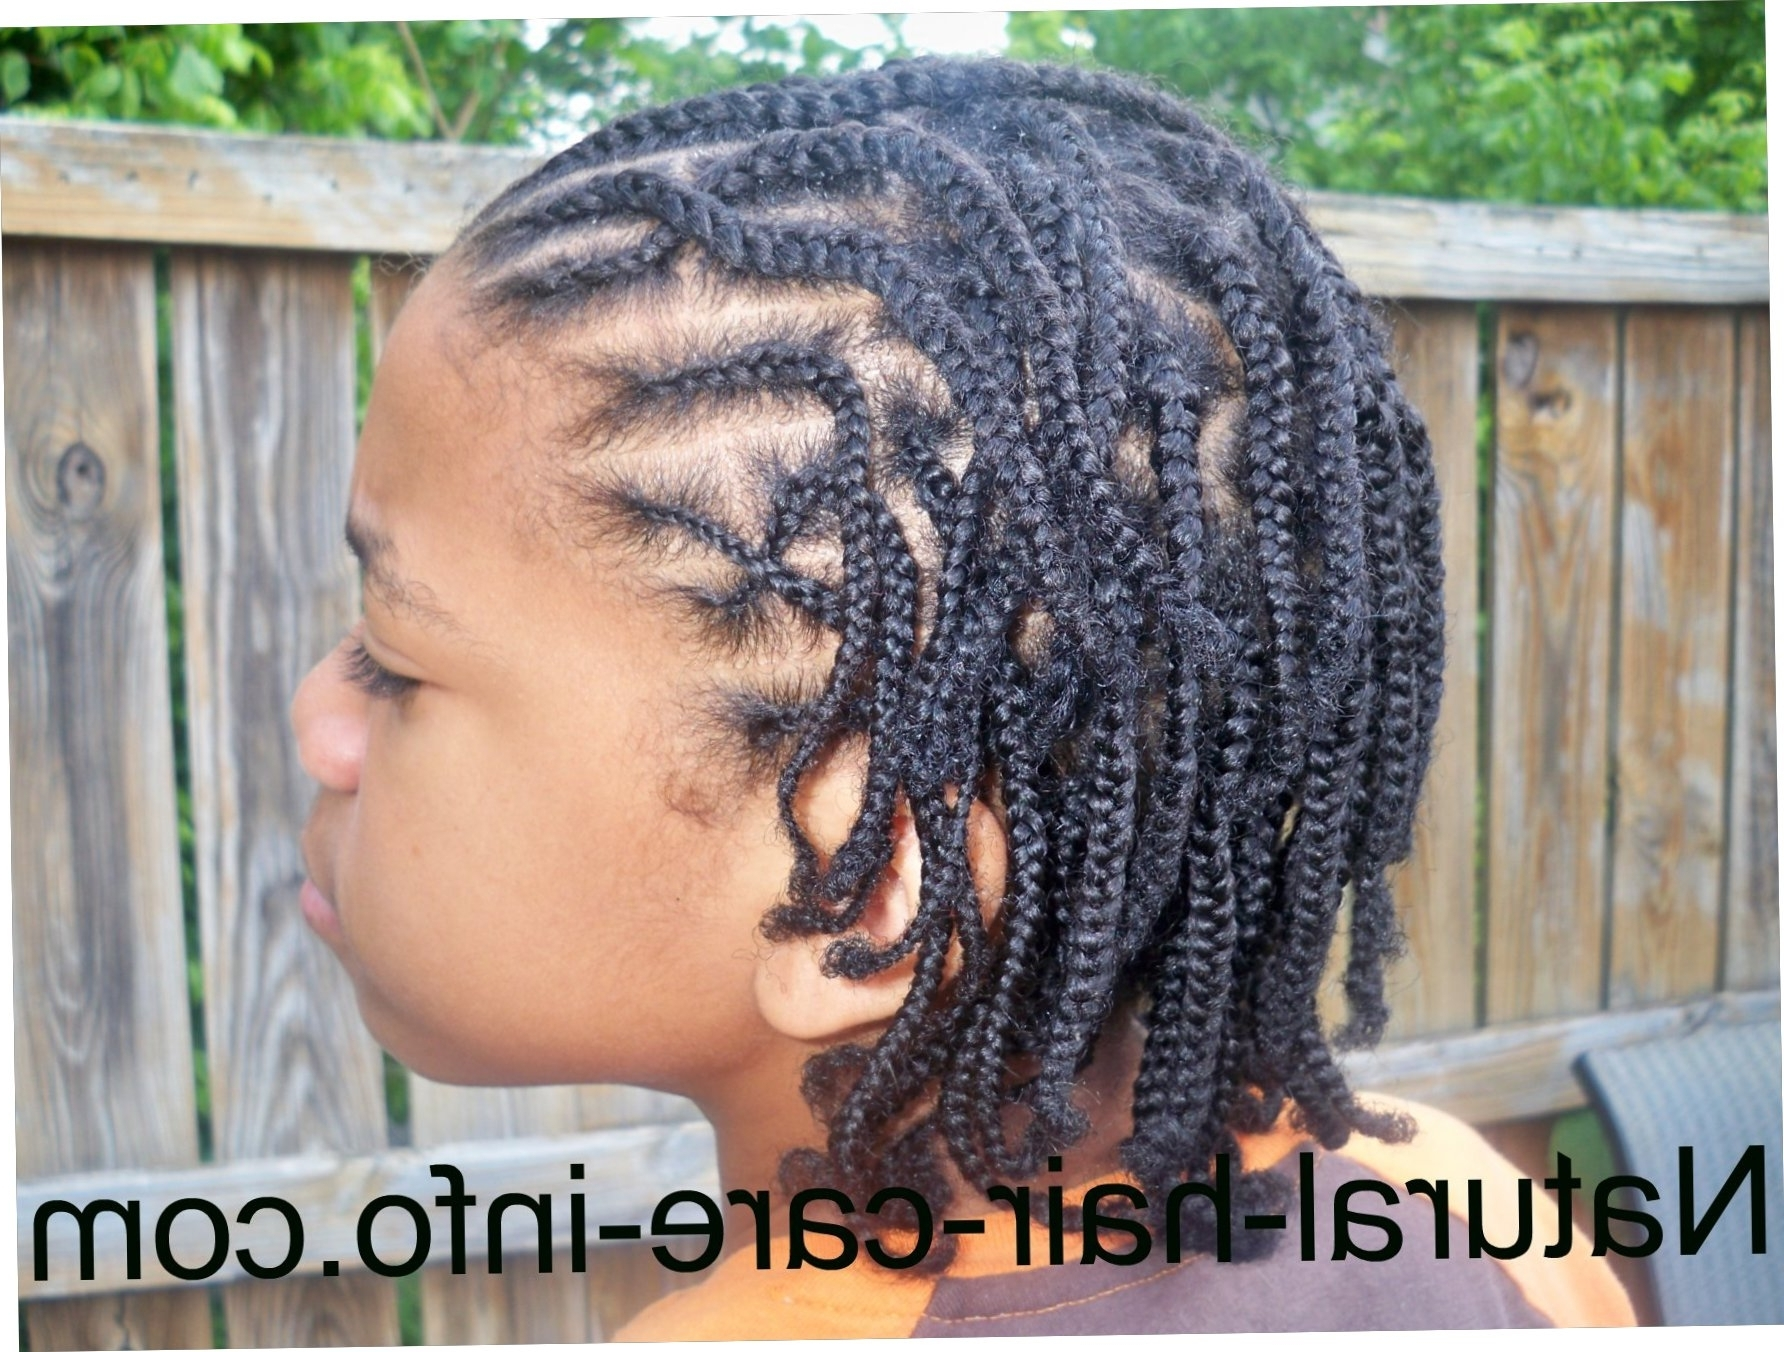 Famous Braided Hairstyles For Black Males Within Min Hairstyles For Braided Hairstyles For Black Man Black Mens (View 6 of 15)